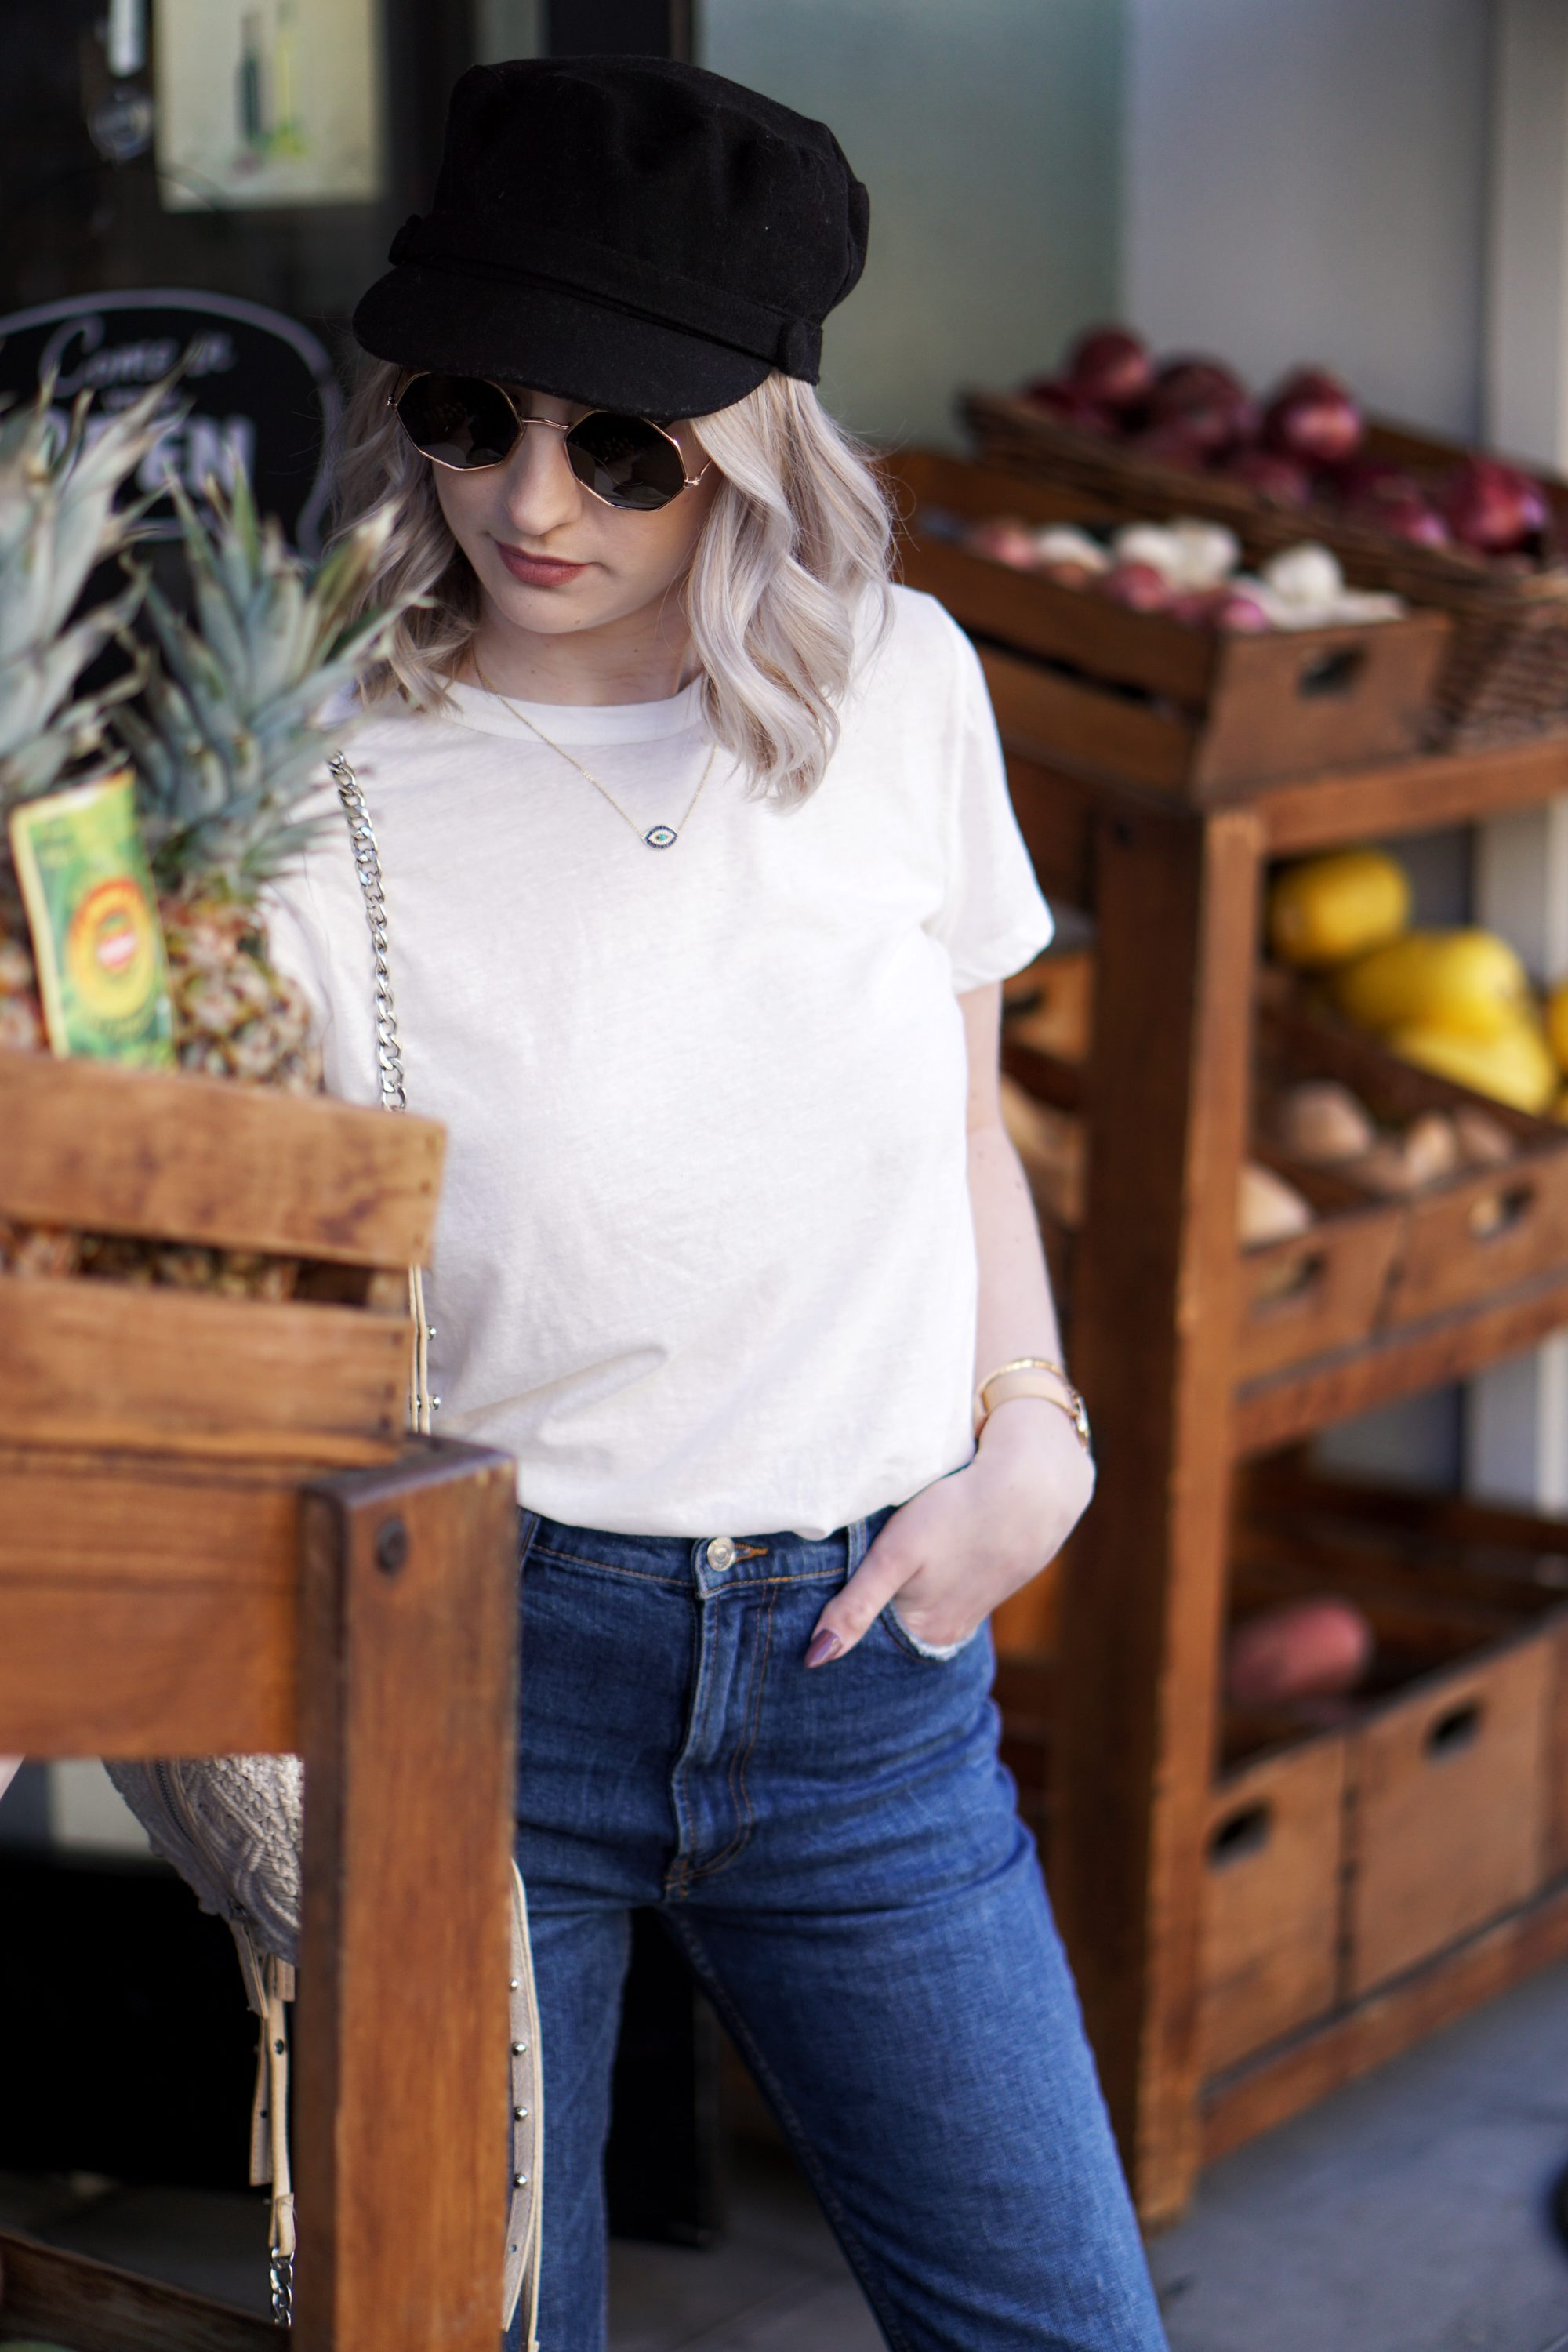 Casual Friday: White Tee & Jeans